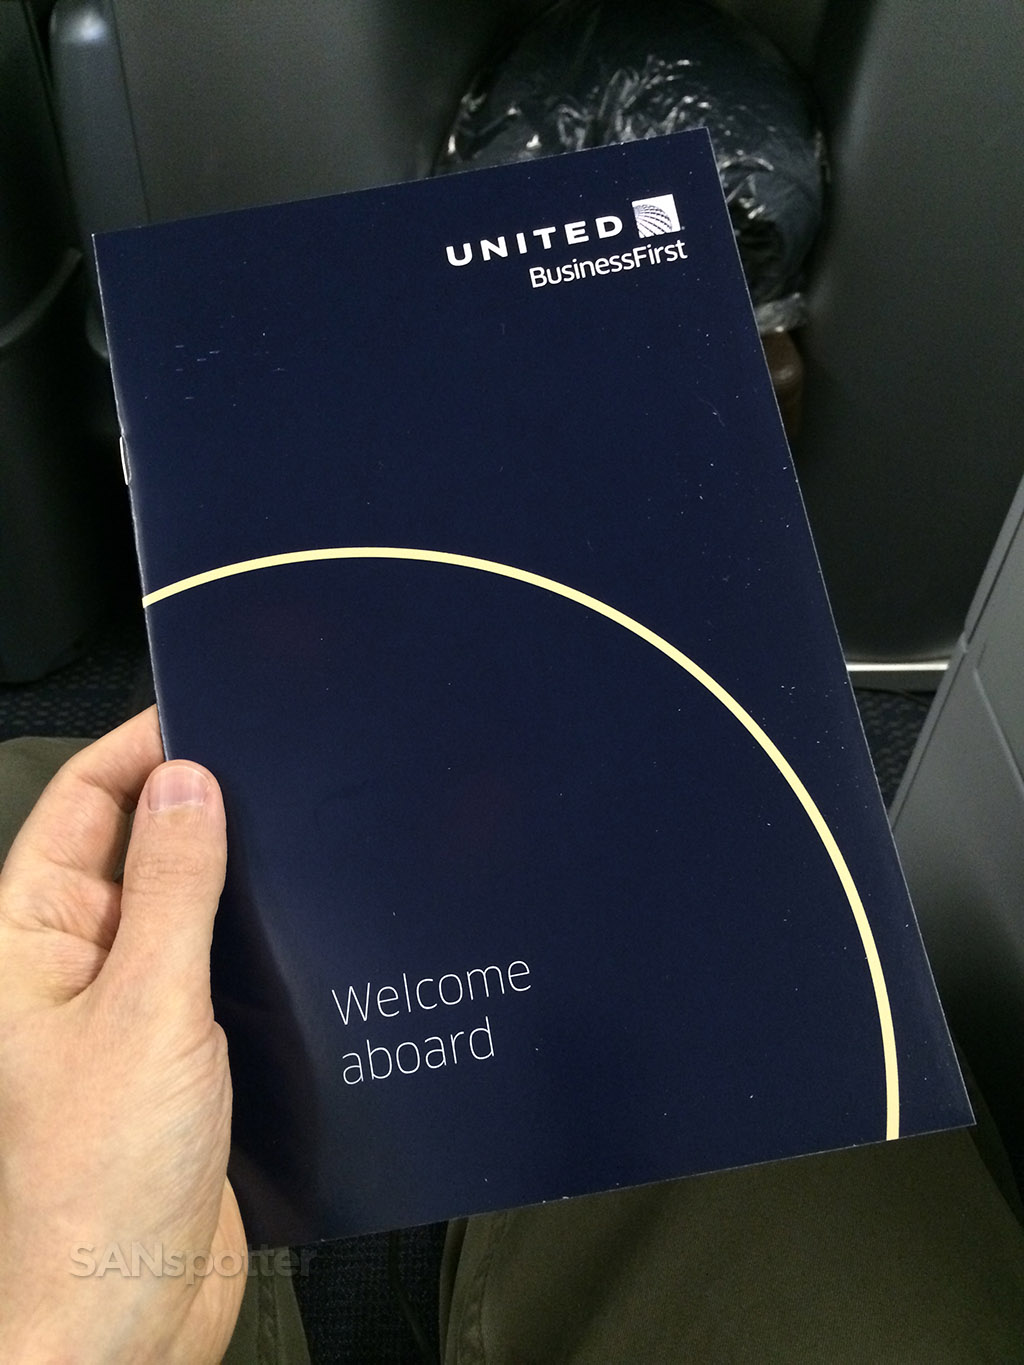 United BusinessFirst menu cover